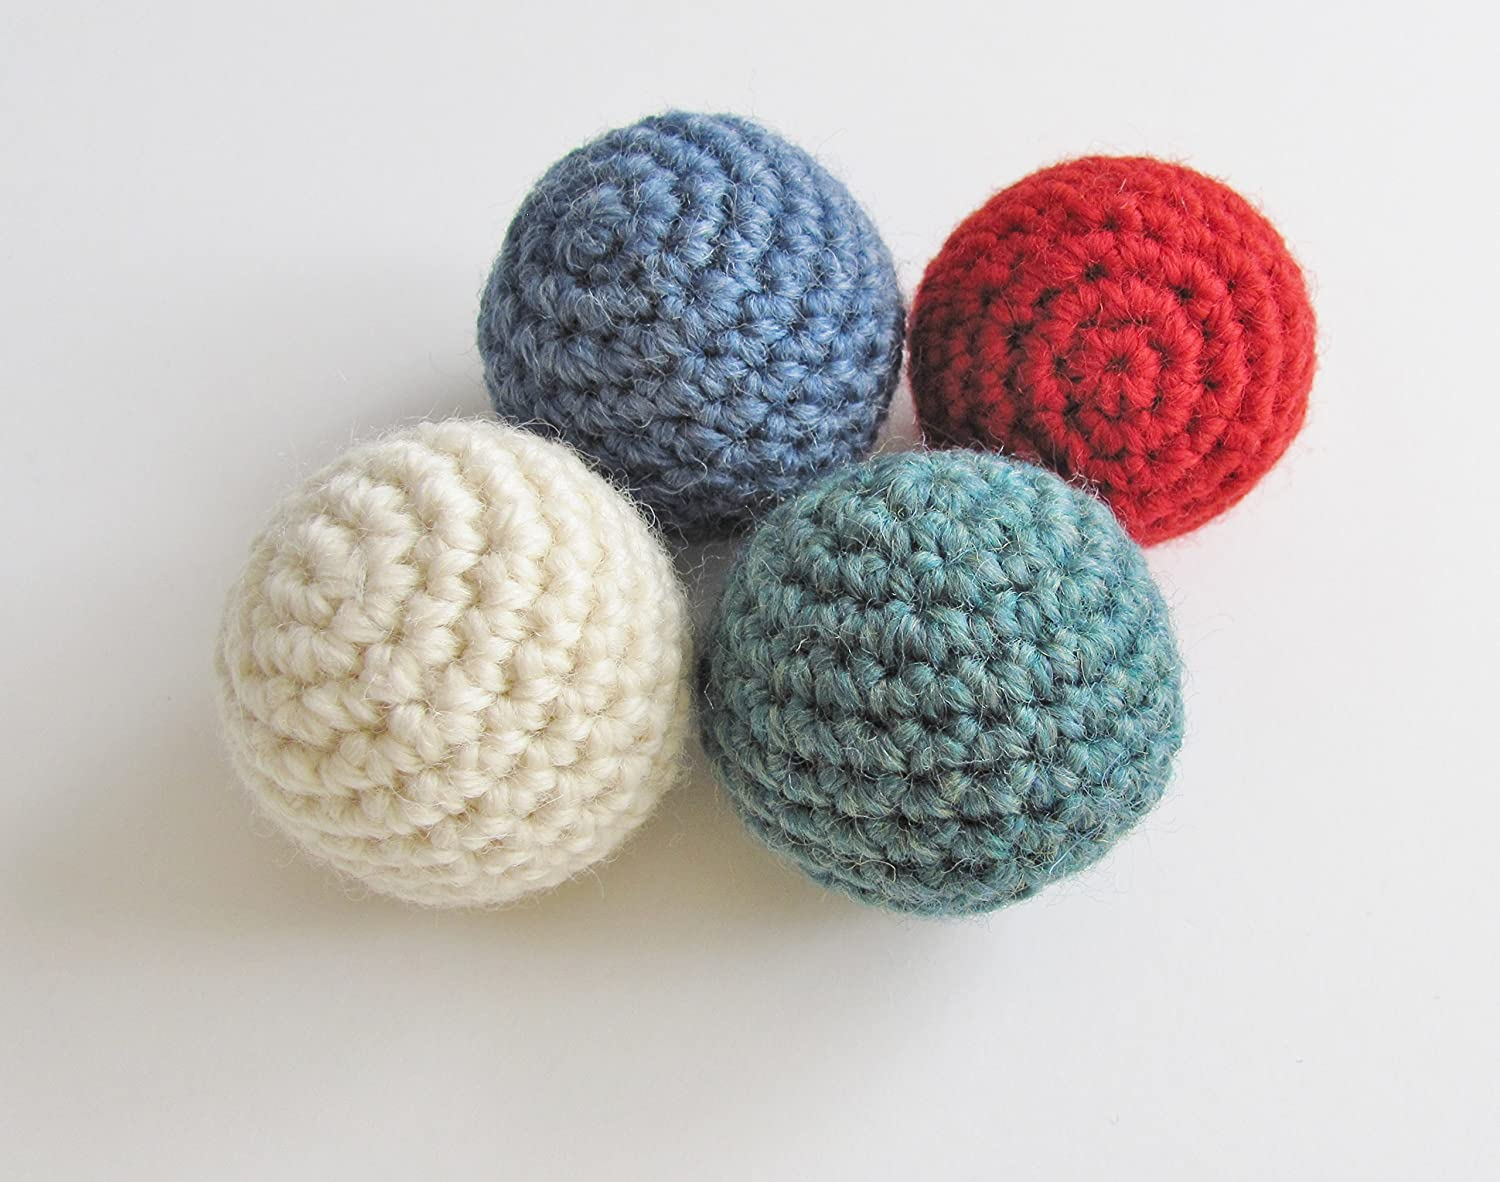 Handmade Cat Toy Balls, Choose Stuffed with Organic Catnip or No Catnip Added